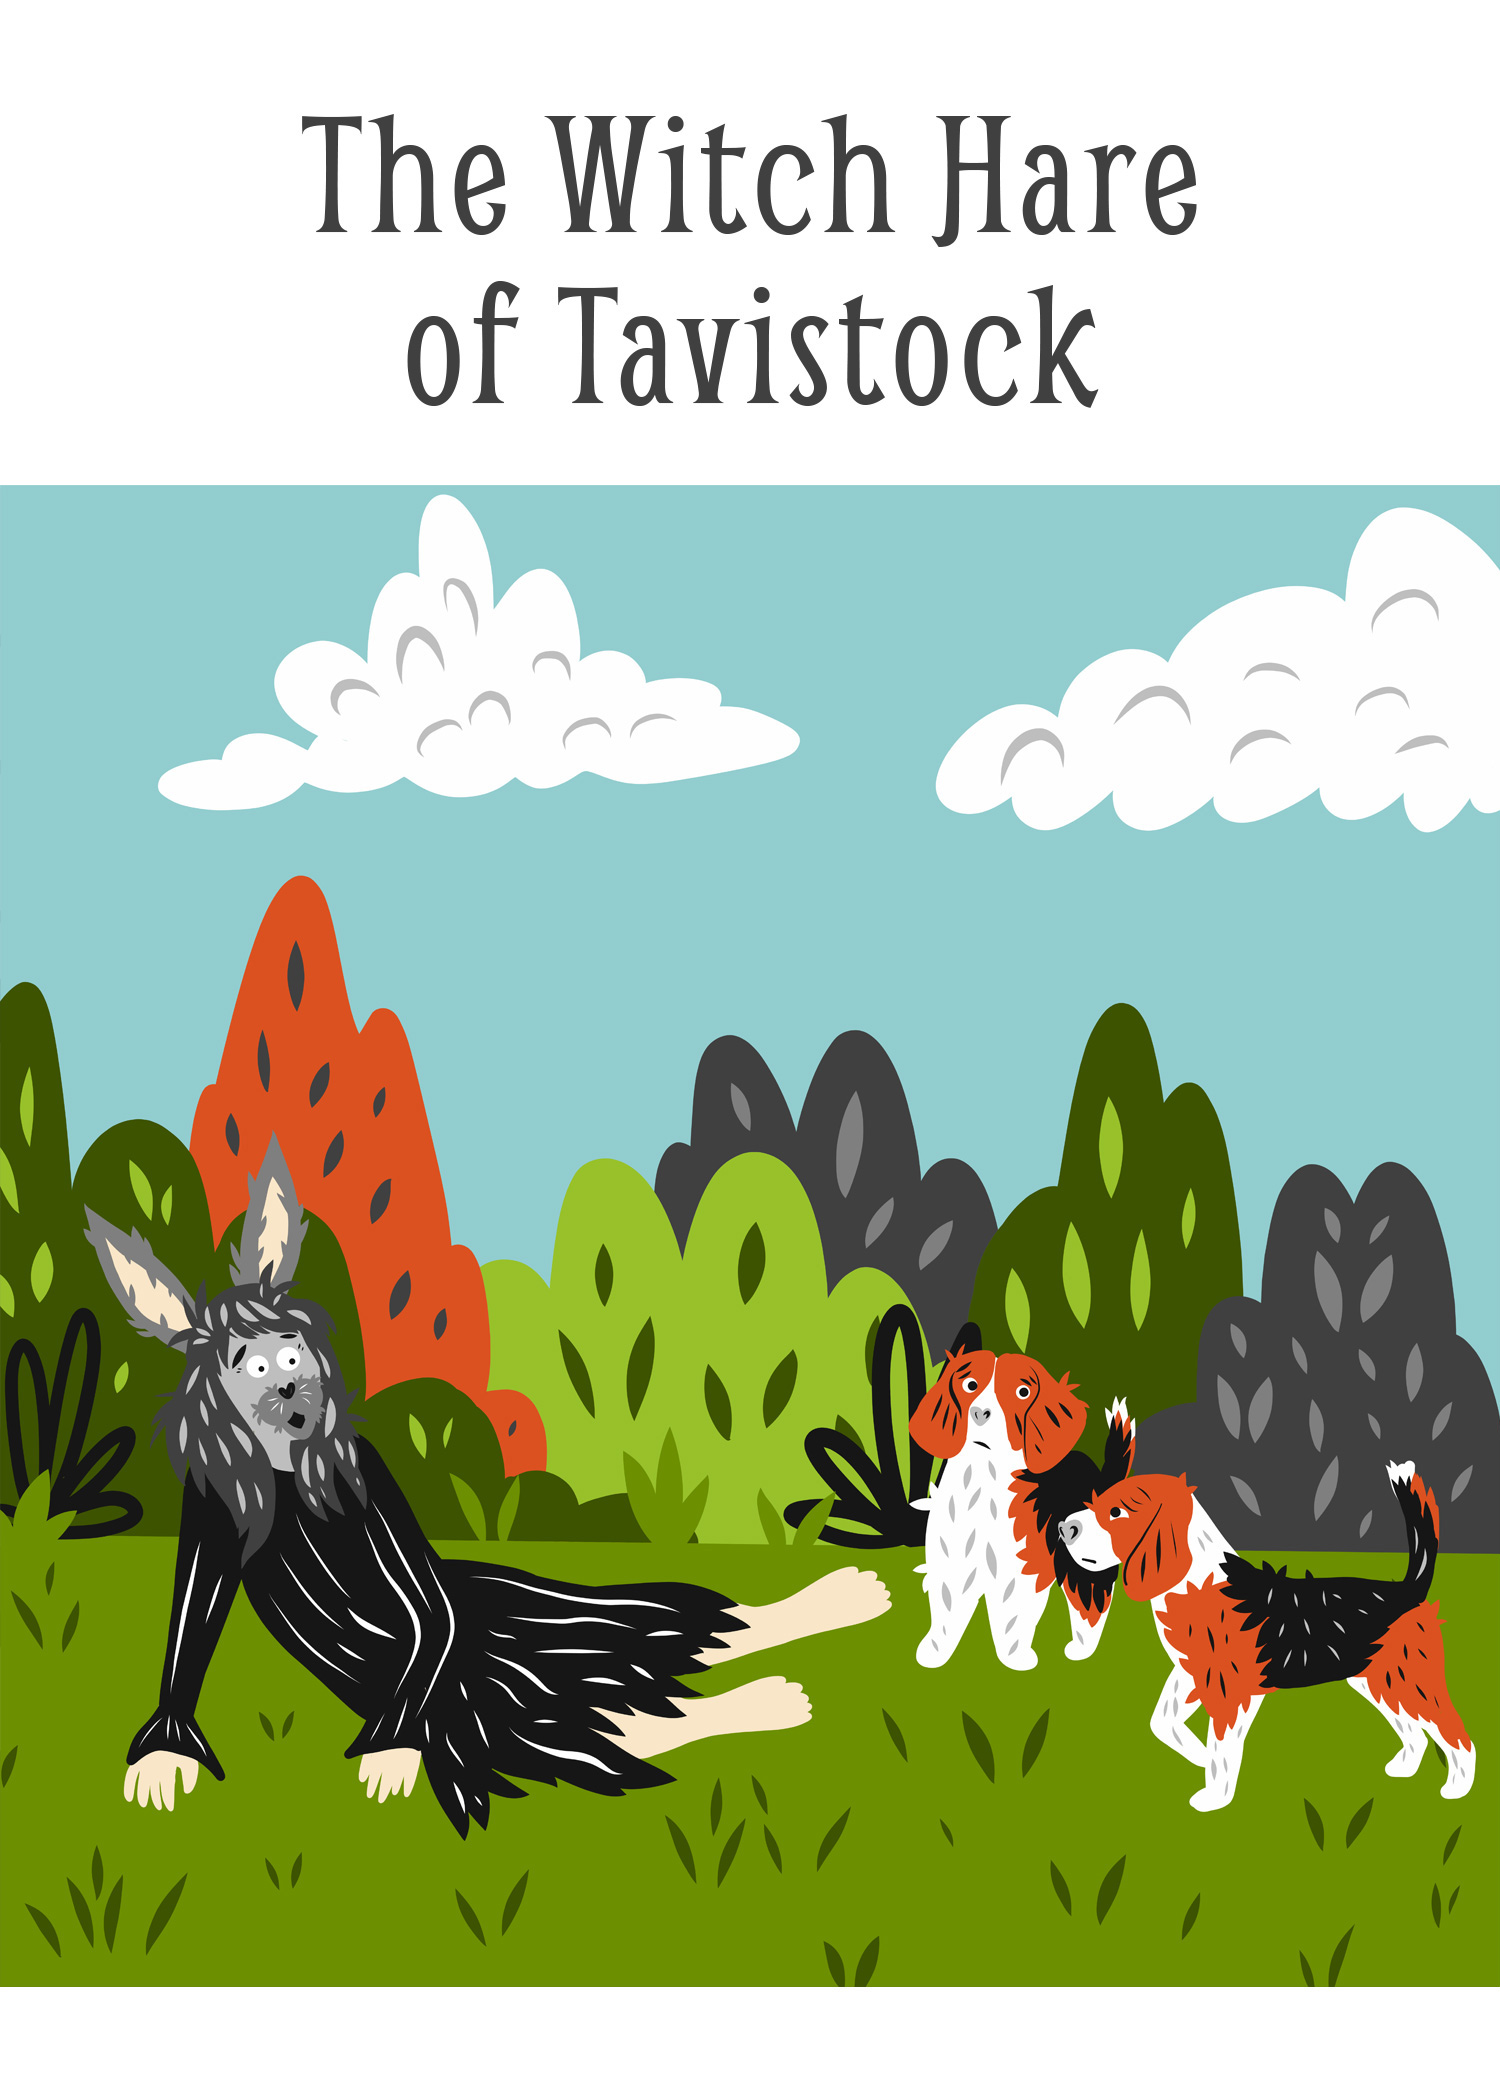 The Witch Hare of Tavistock